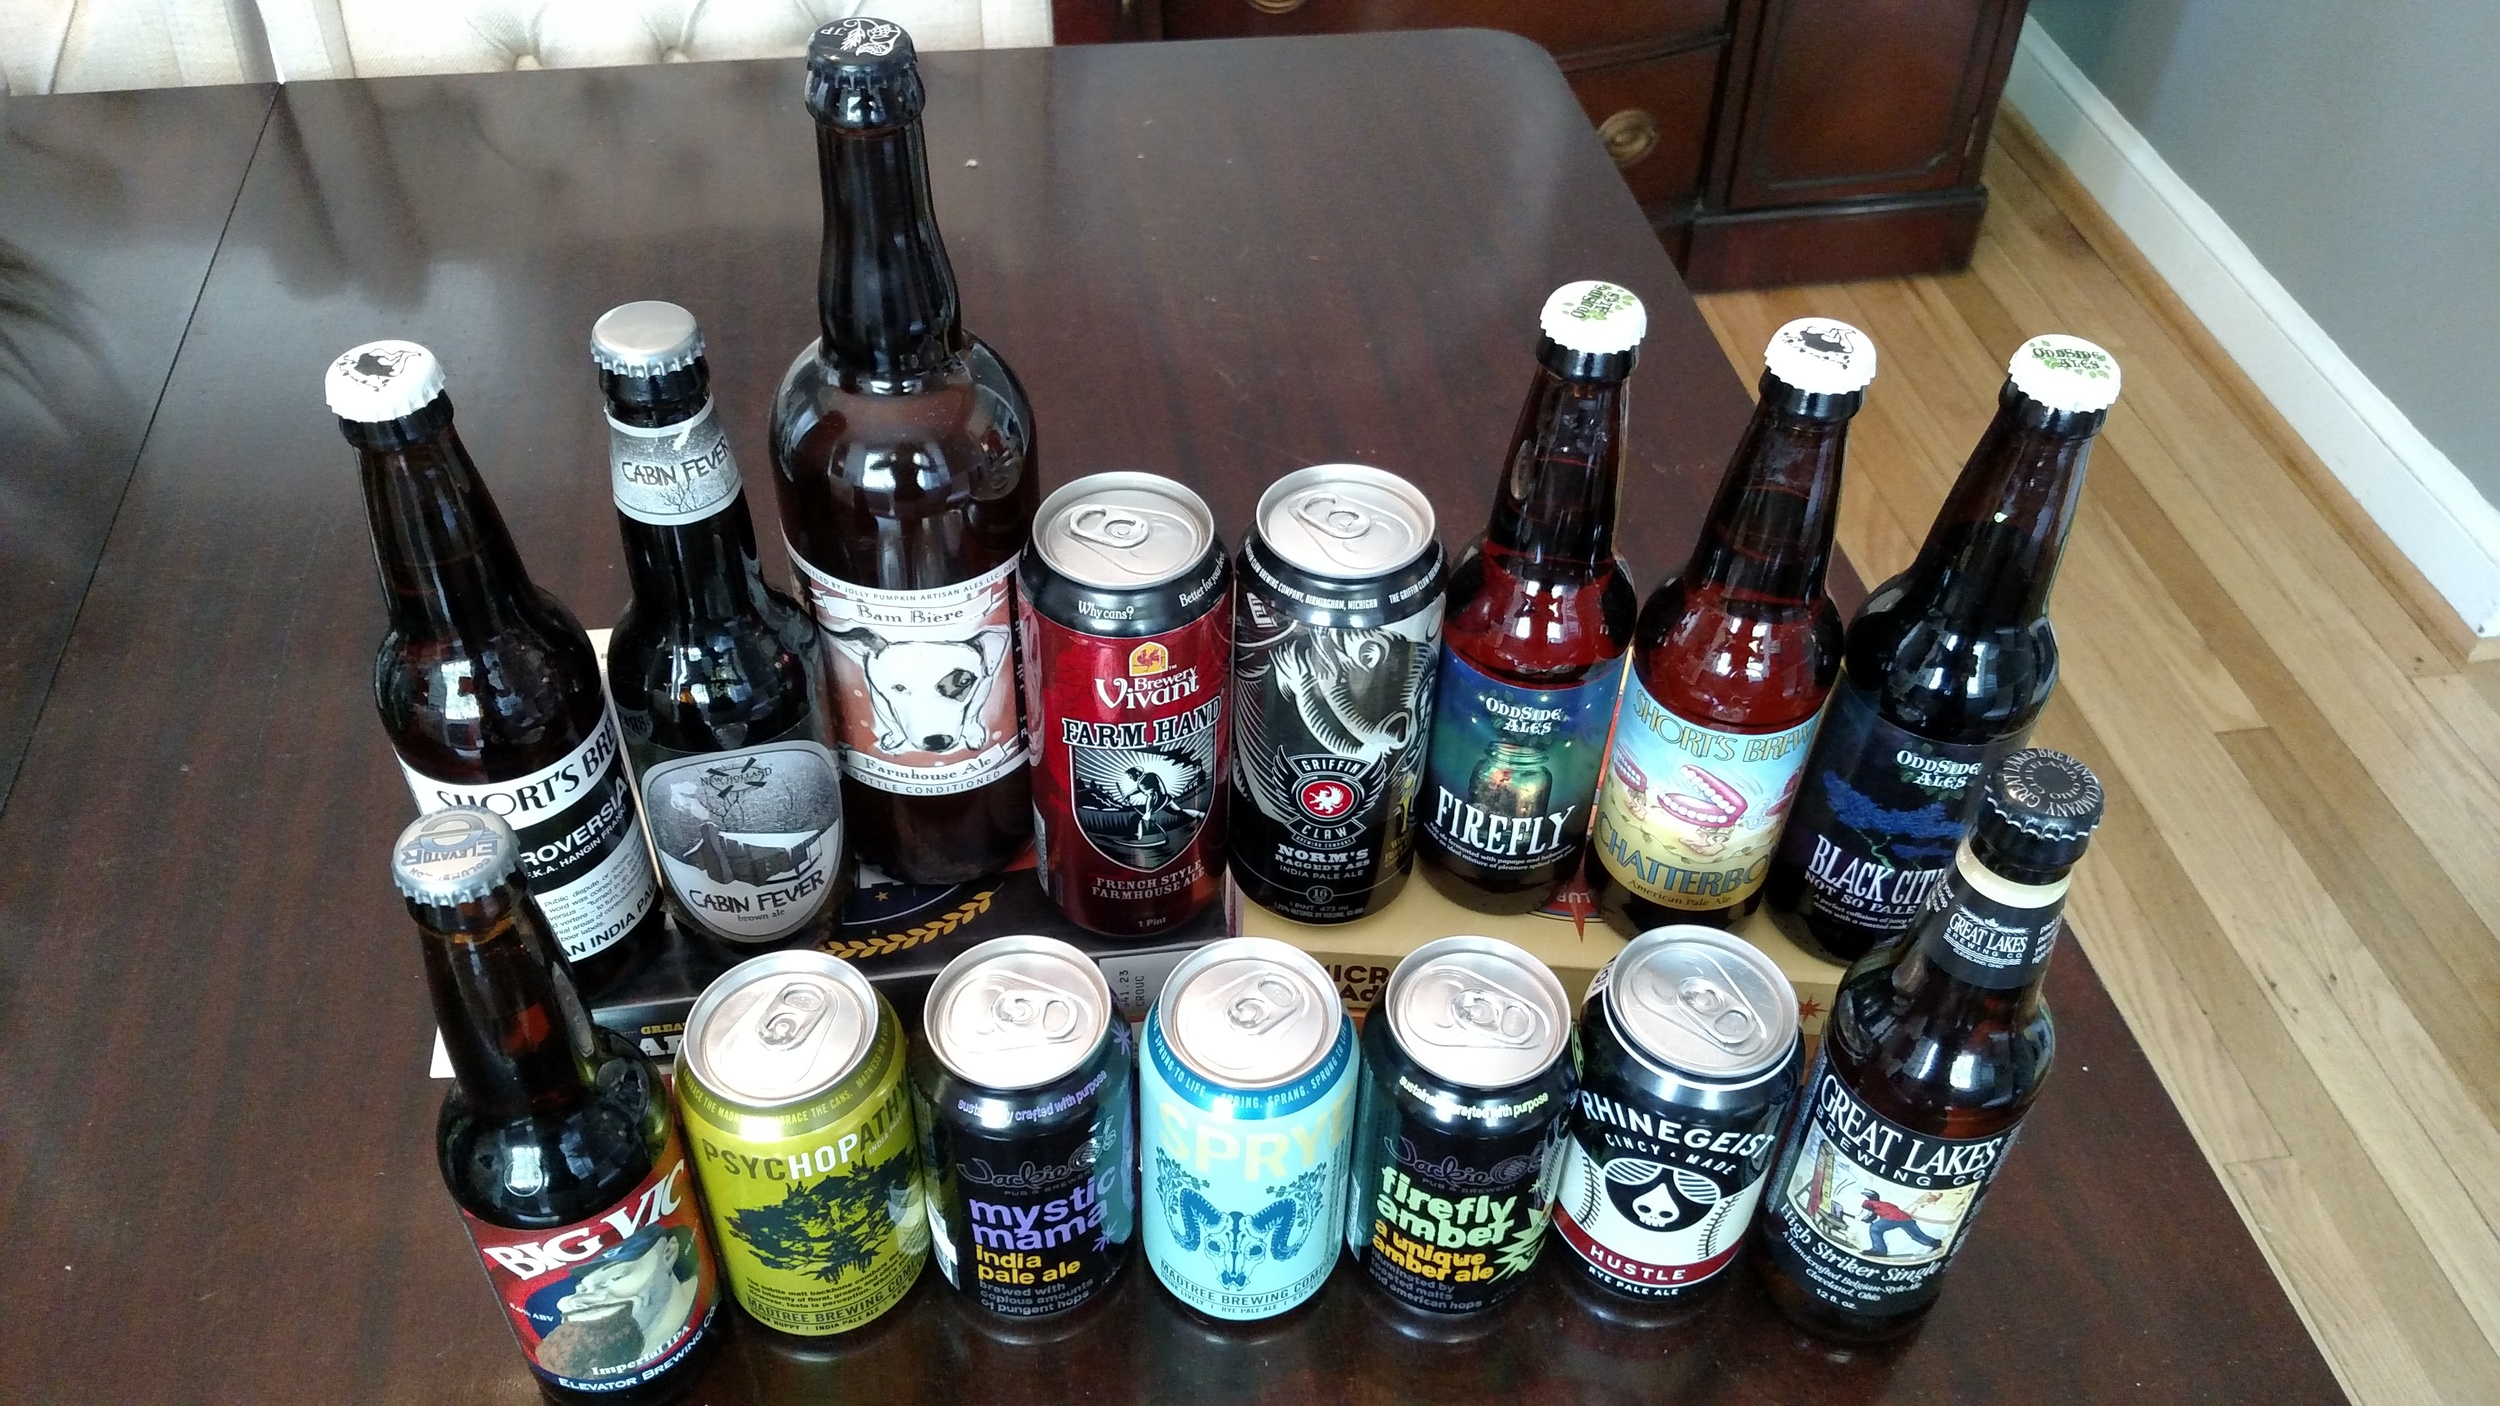 We're going to have some fun tasting these new beers over the next couple of weeks... or days.